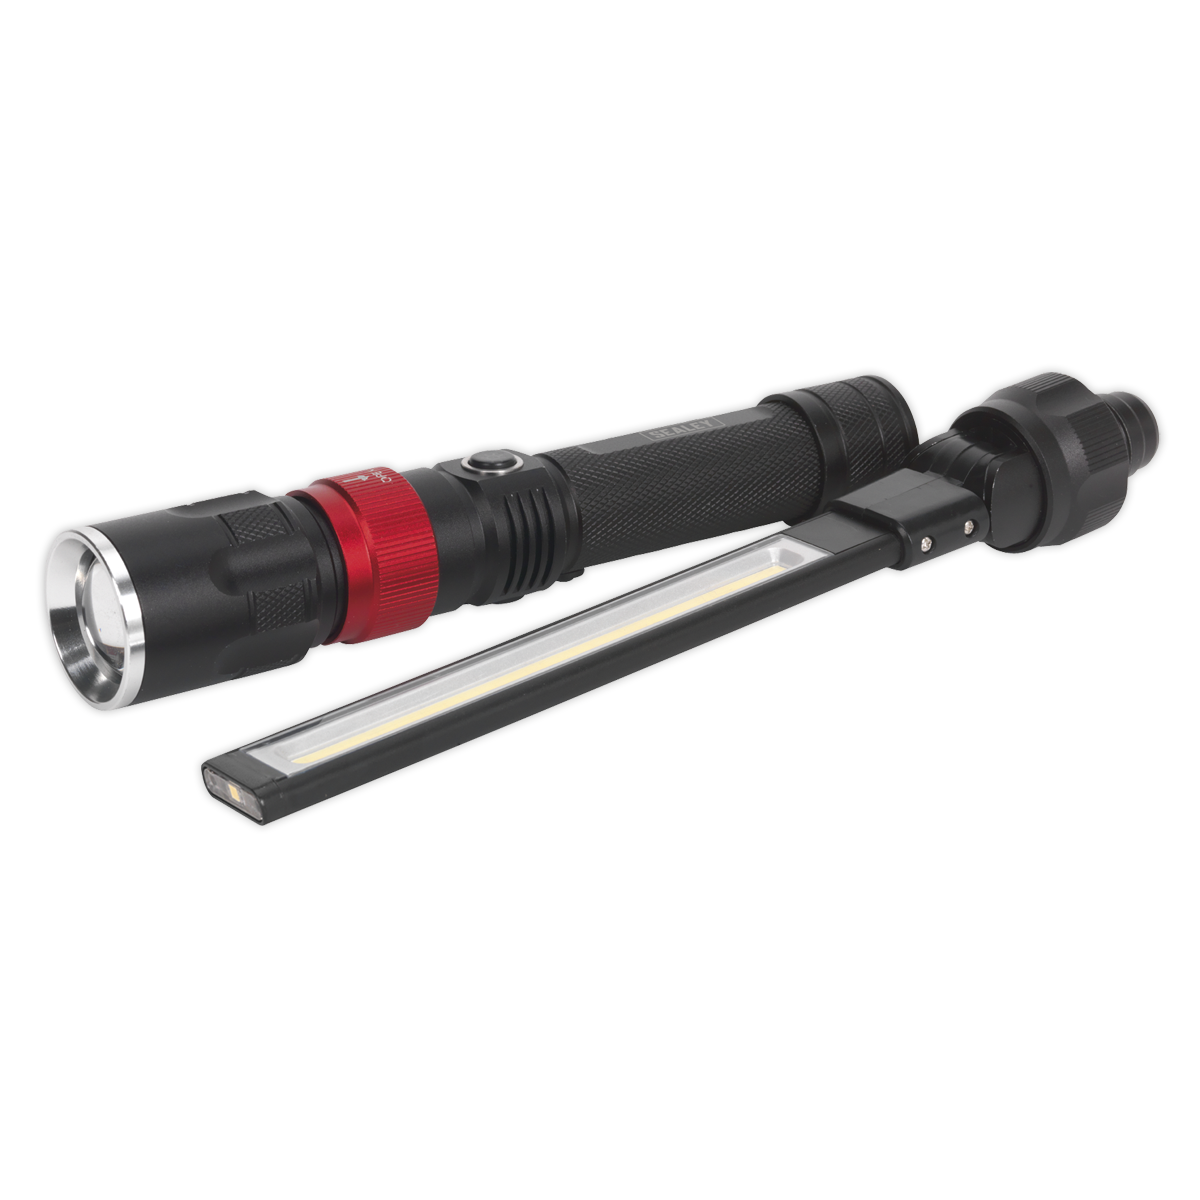 Interchangeable COB LED Inspection Lamp & Torch Rechargeable